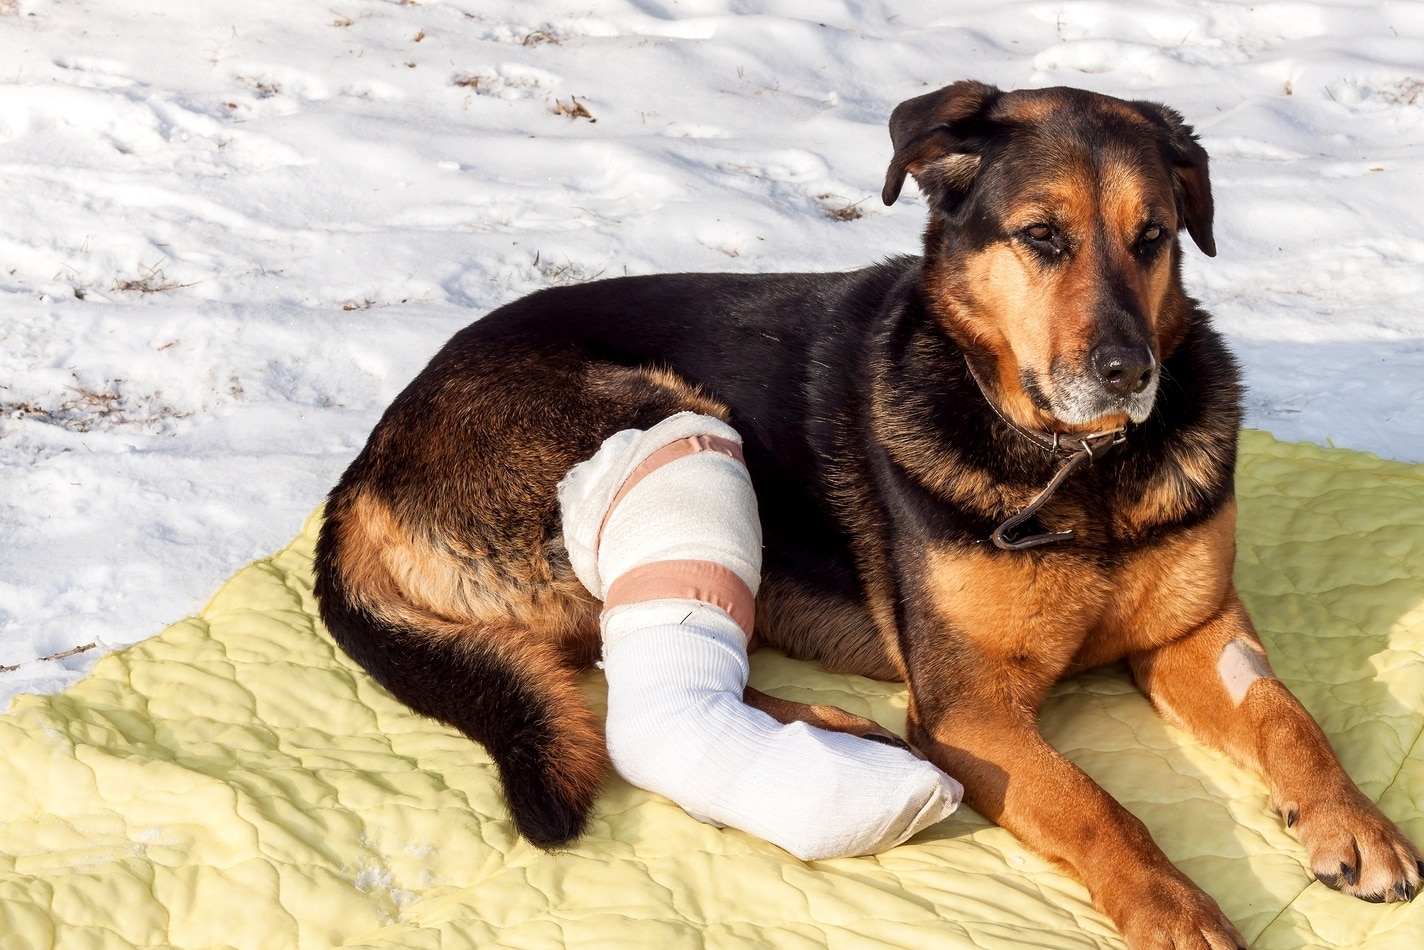 Dog with broken leg in a cast lies on a yellow blanket in the snow.